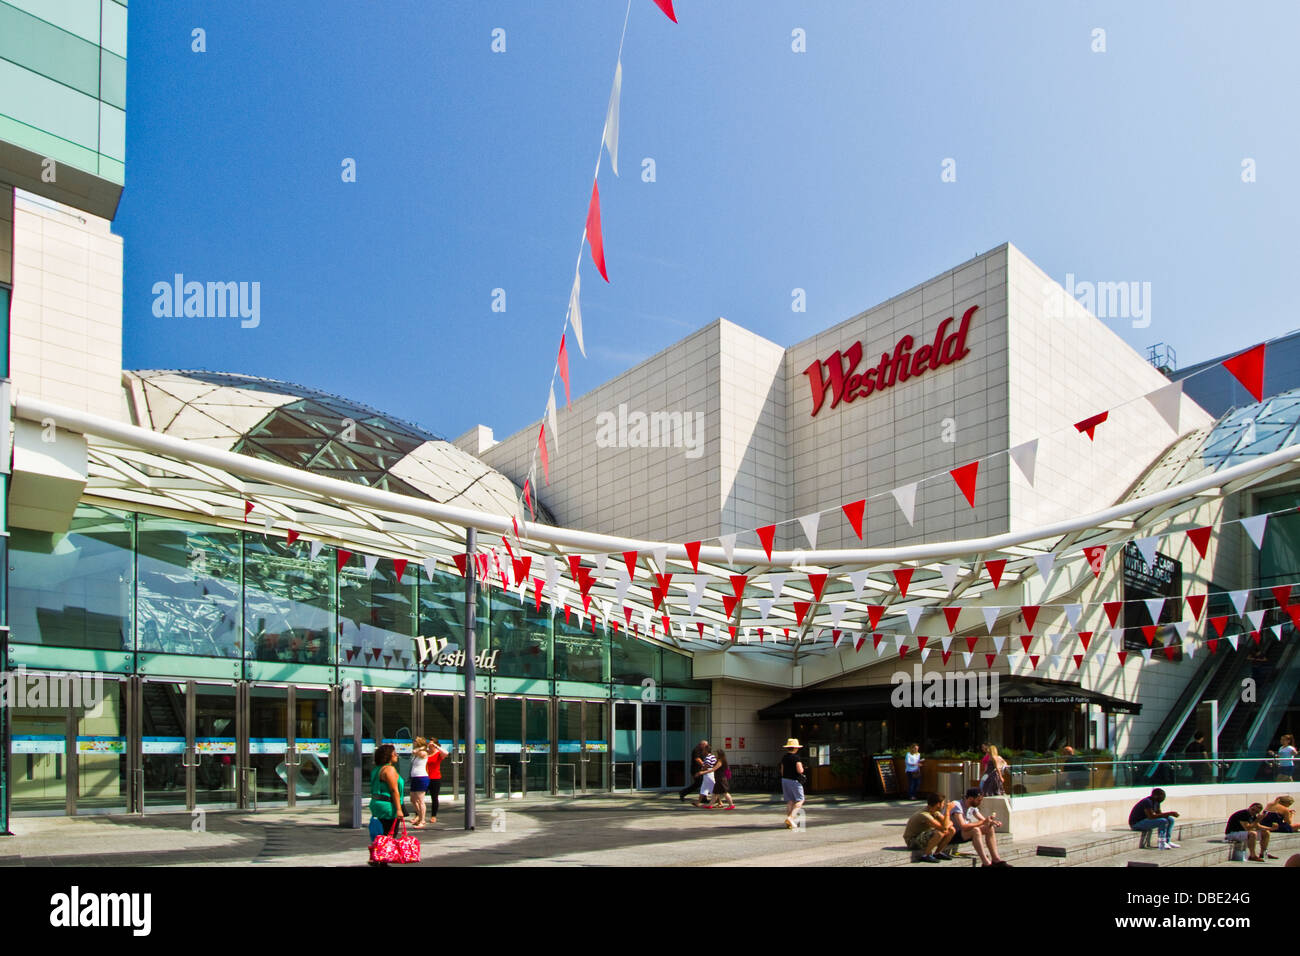 Westfield shopping centre at Shepherds Bush in the Borough of Hammersmith&Fulham, London - Stock Image